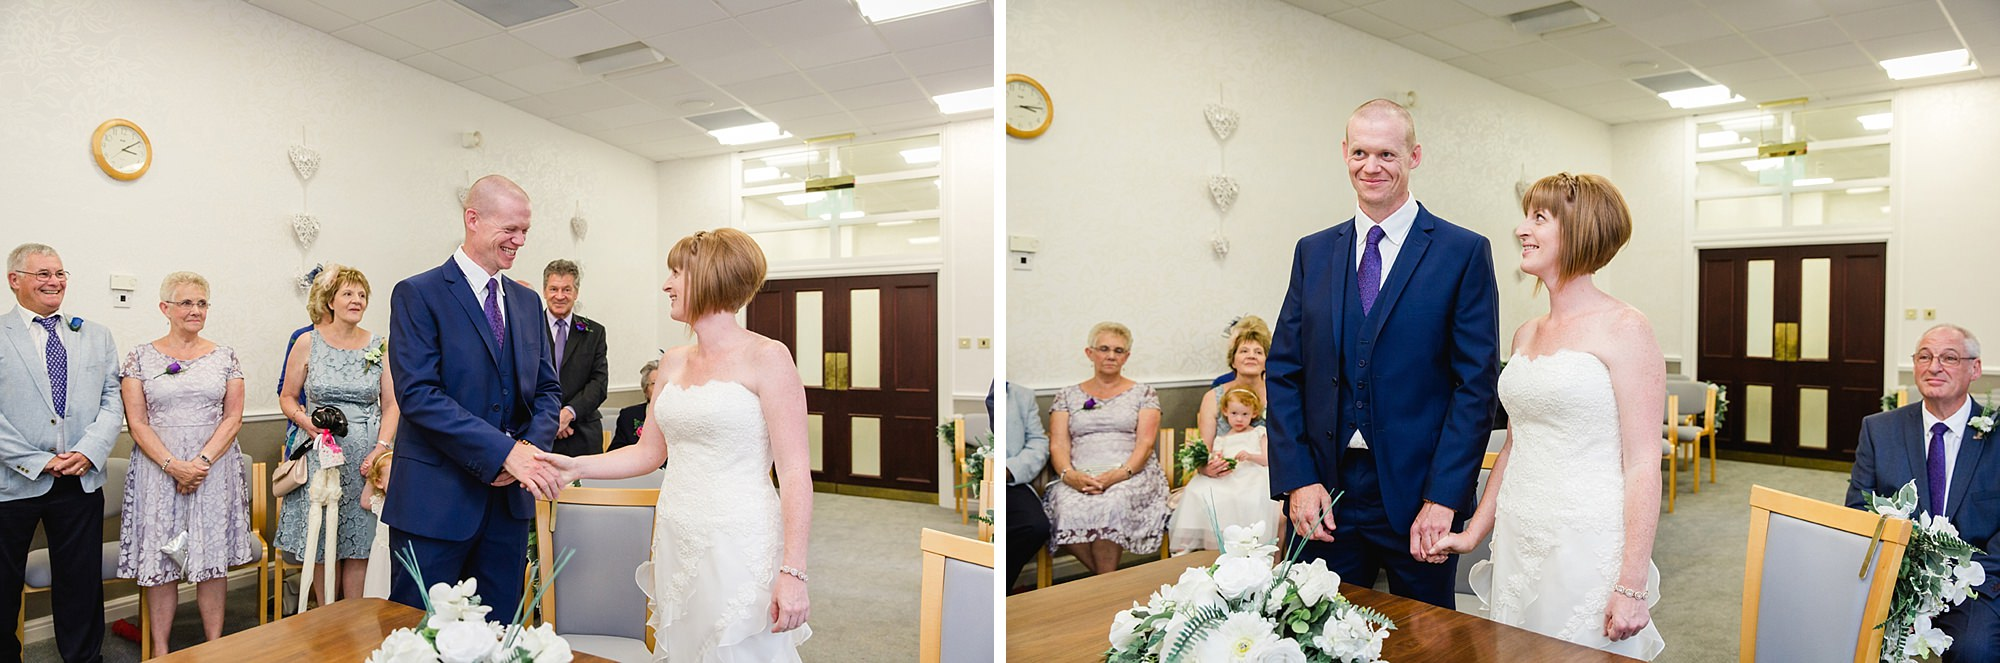 Mill House hotel wedding photography bride and groom in ceremony